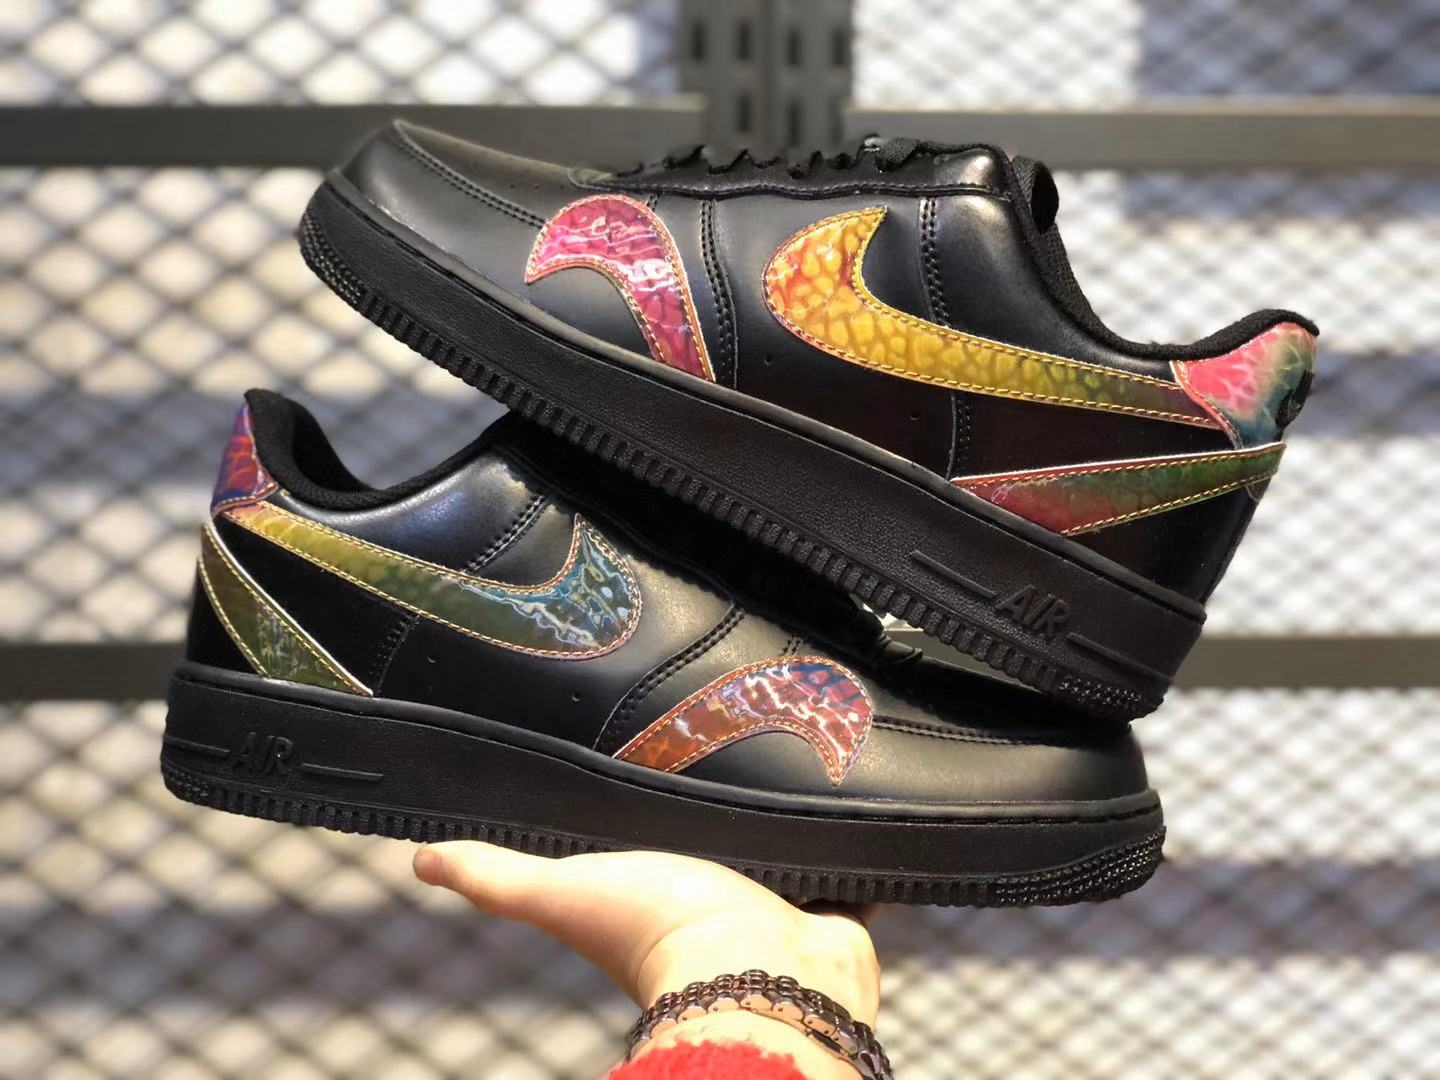 Nike Air Force Low 1'07 Black/Reflective Silver Newest Sport Shoes CK7214-001